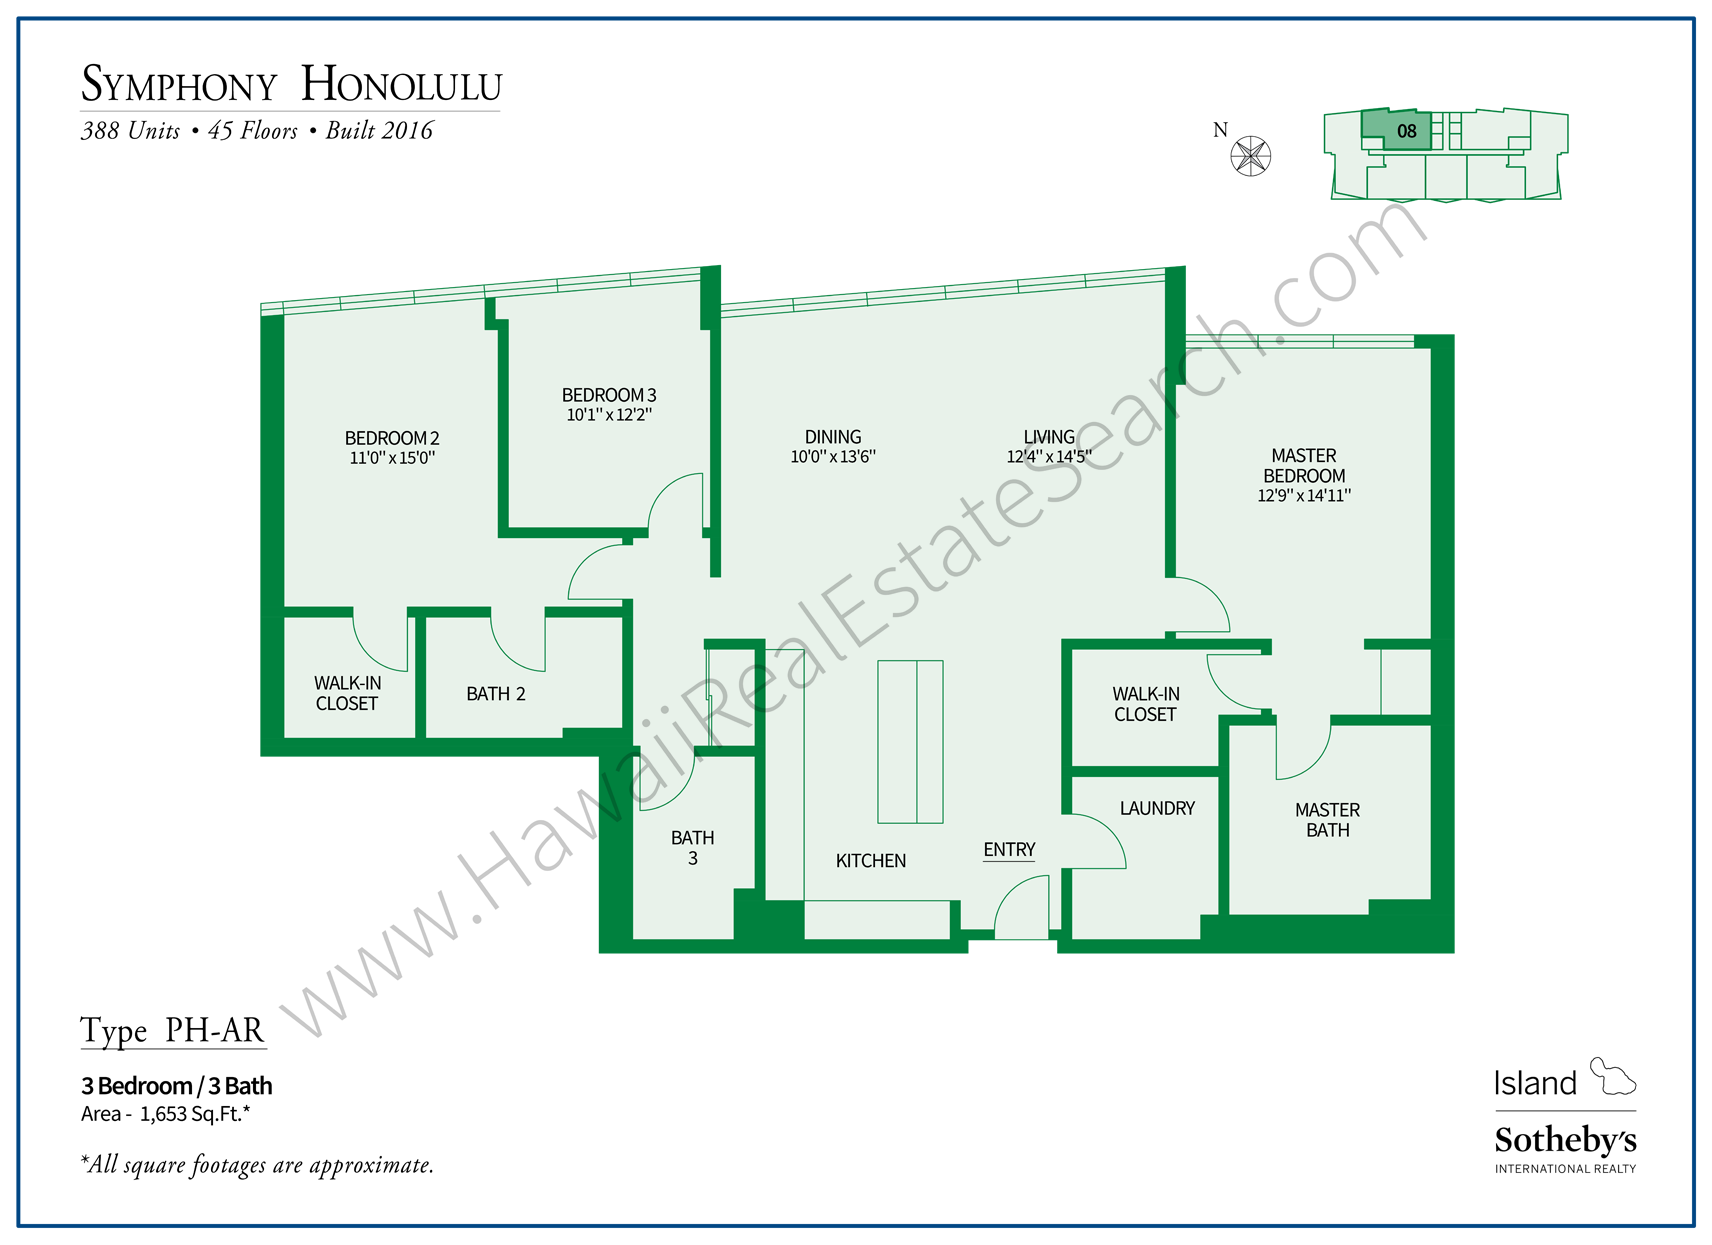 Symphony Honolulu Penthouse A Floor Plan